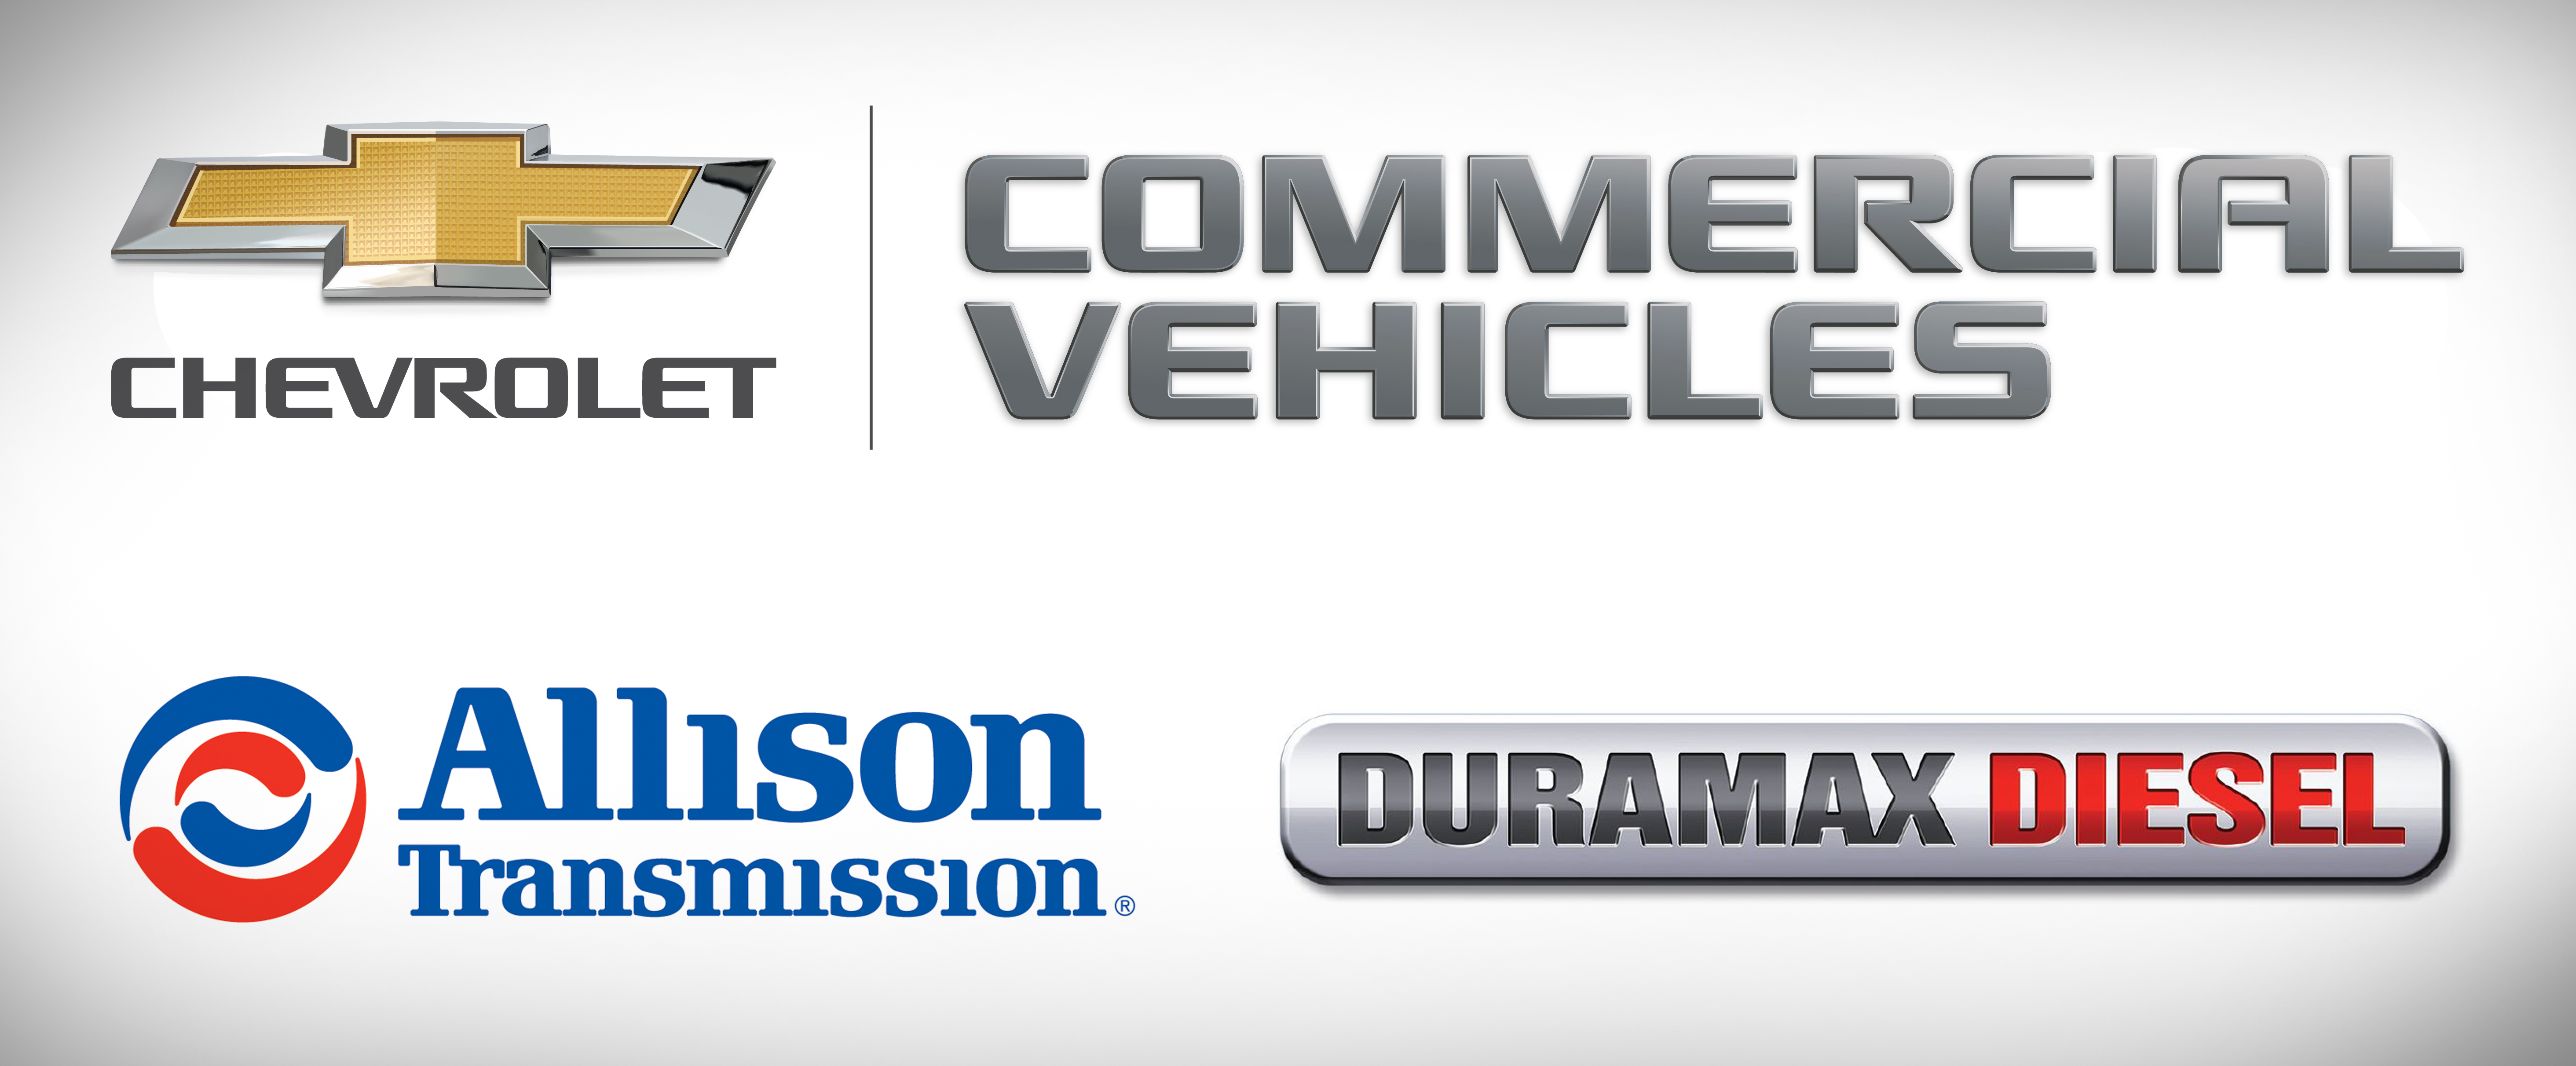 Duramax transmission user manuals array duramax diesel allison transmission will power chevrolet u0027s all new rh media chevrolet com fandeluxe Image collections